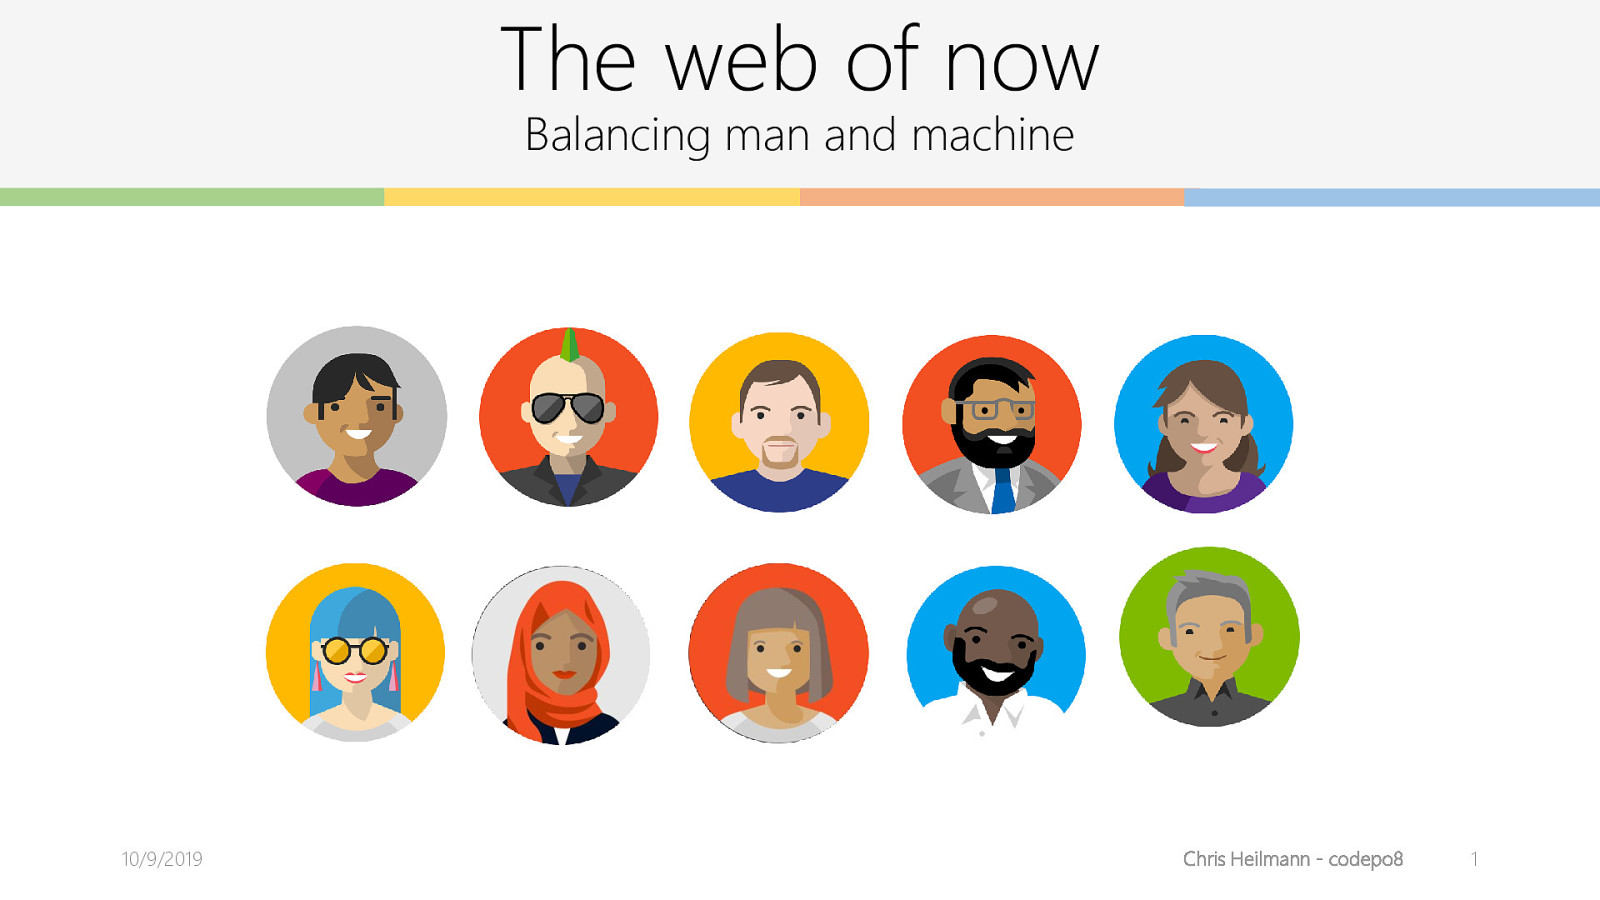 The web of now - Balancing man and machine